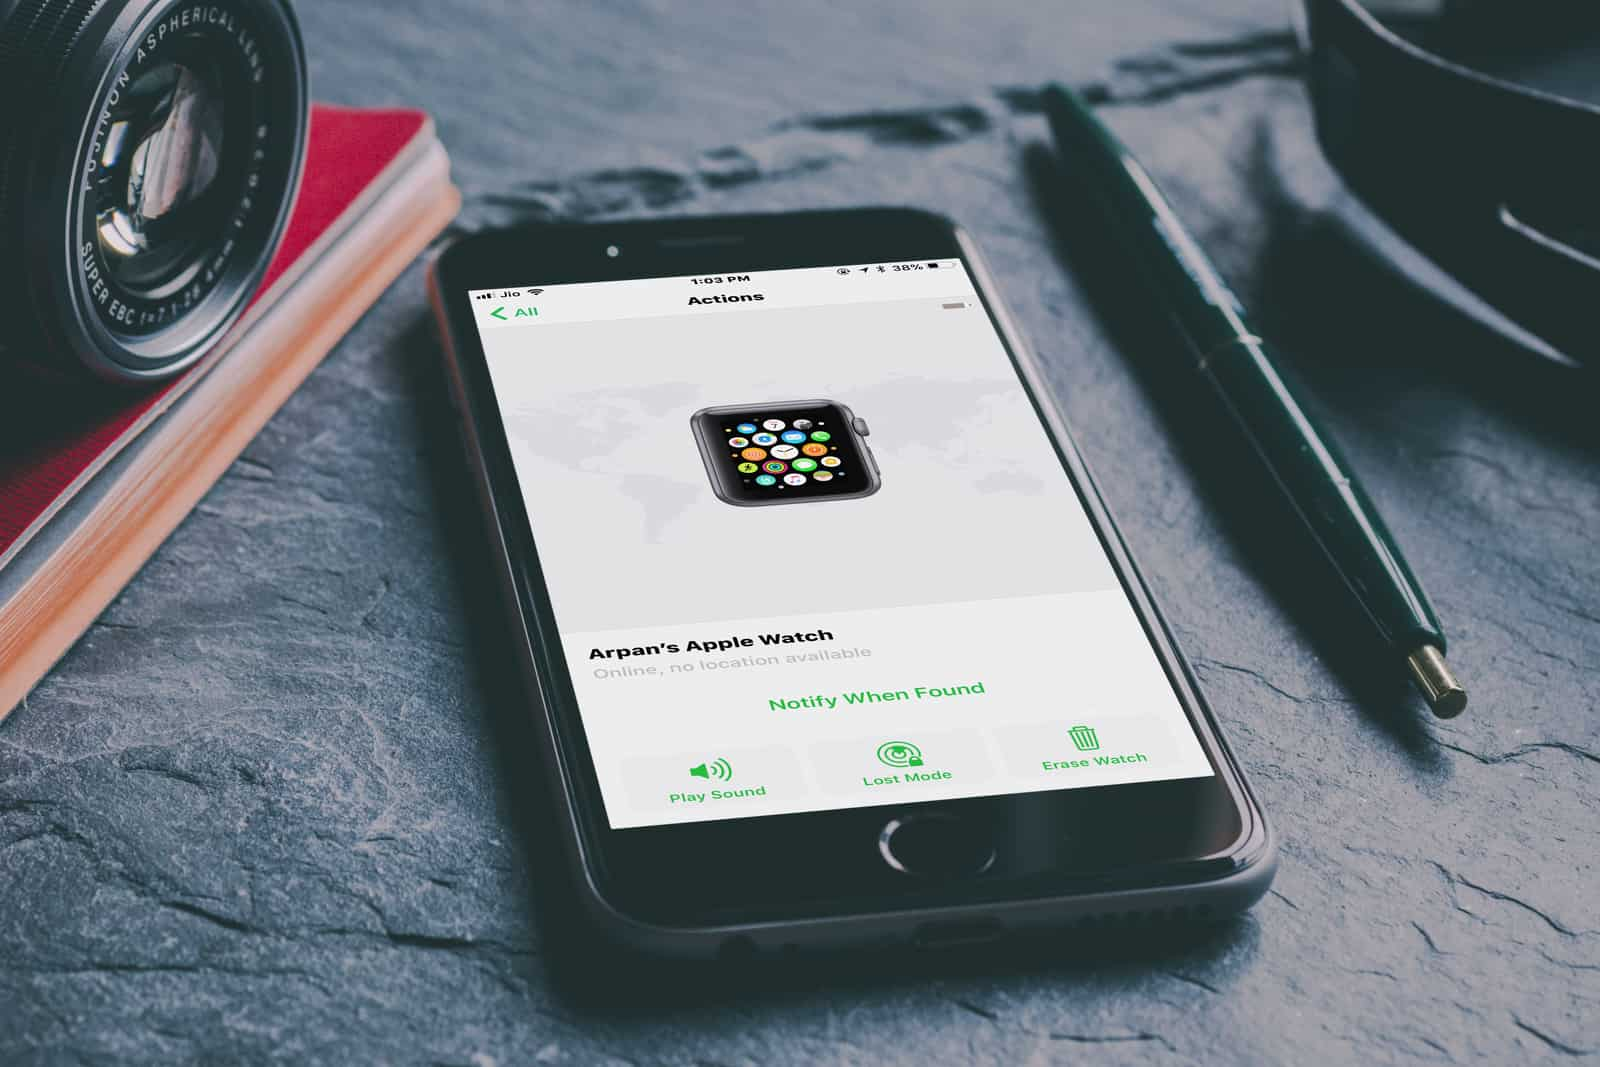 How to Find Lost Apple Watch Using Find My iPhone App